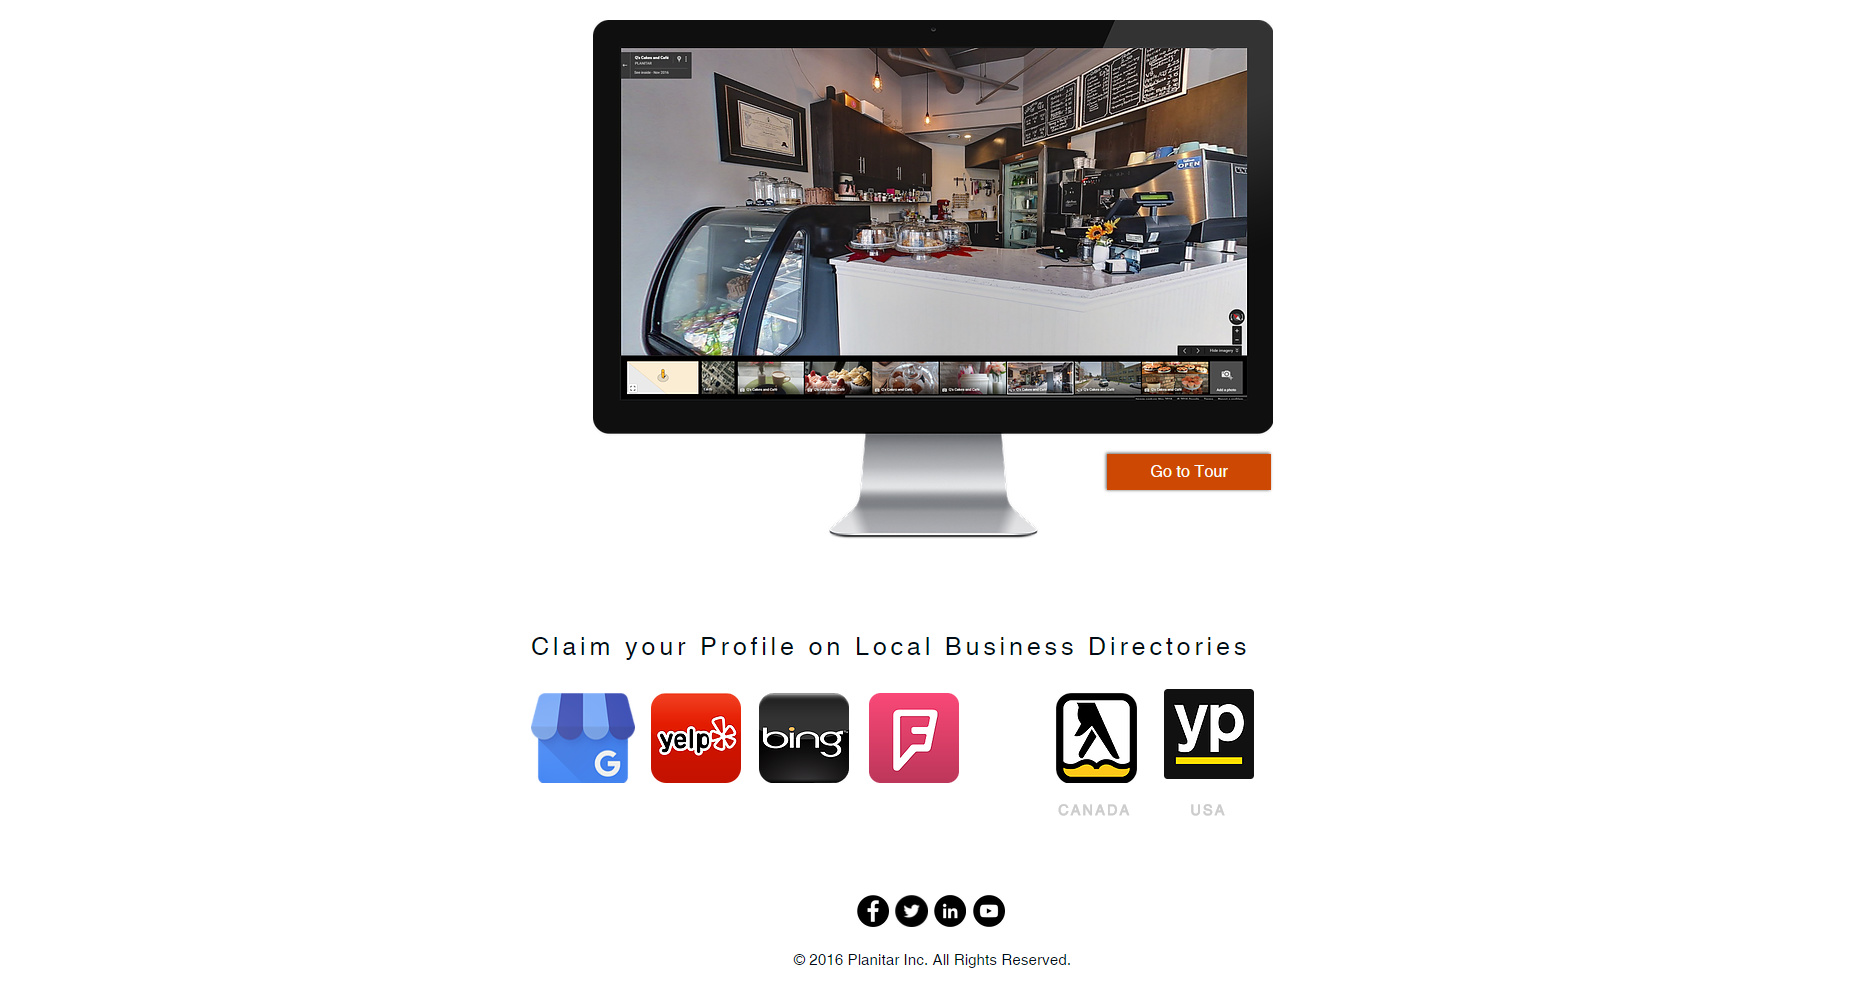 Do you own your online profile? - Business Discussions